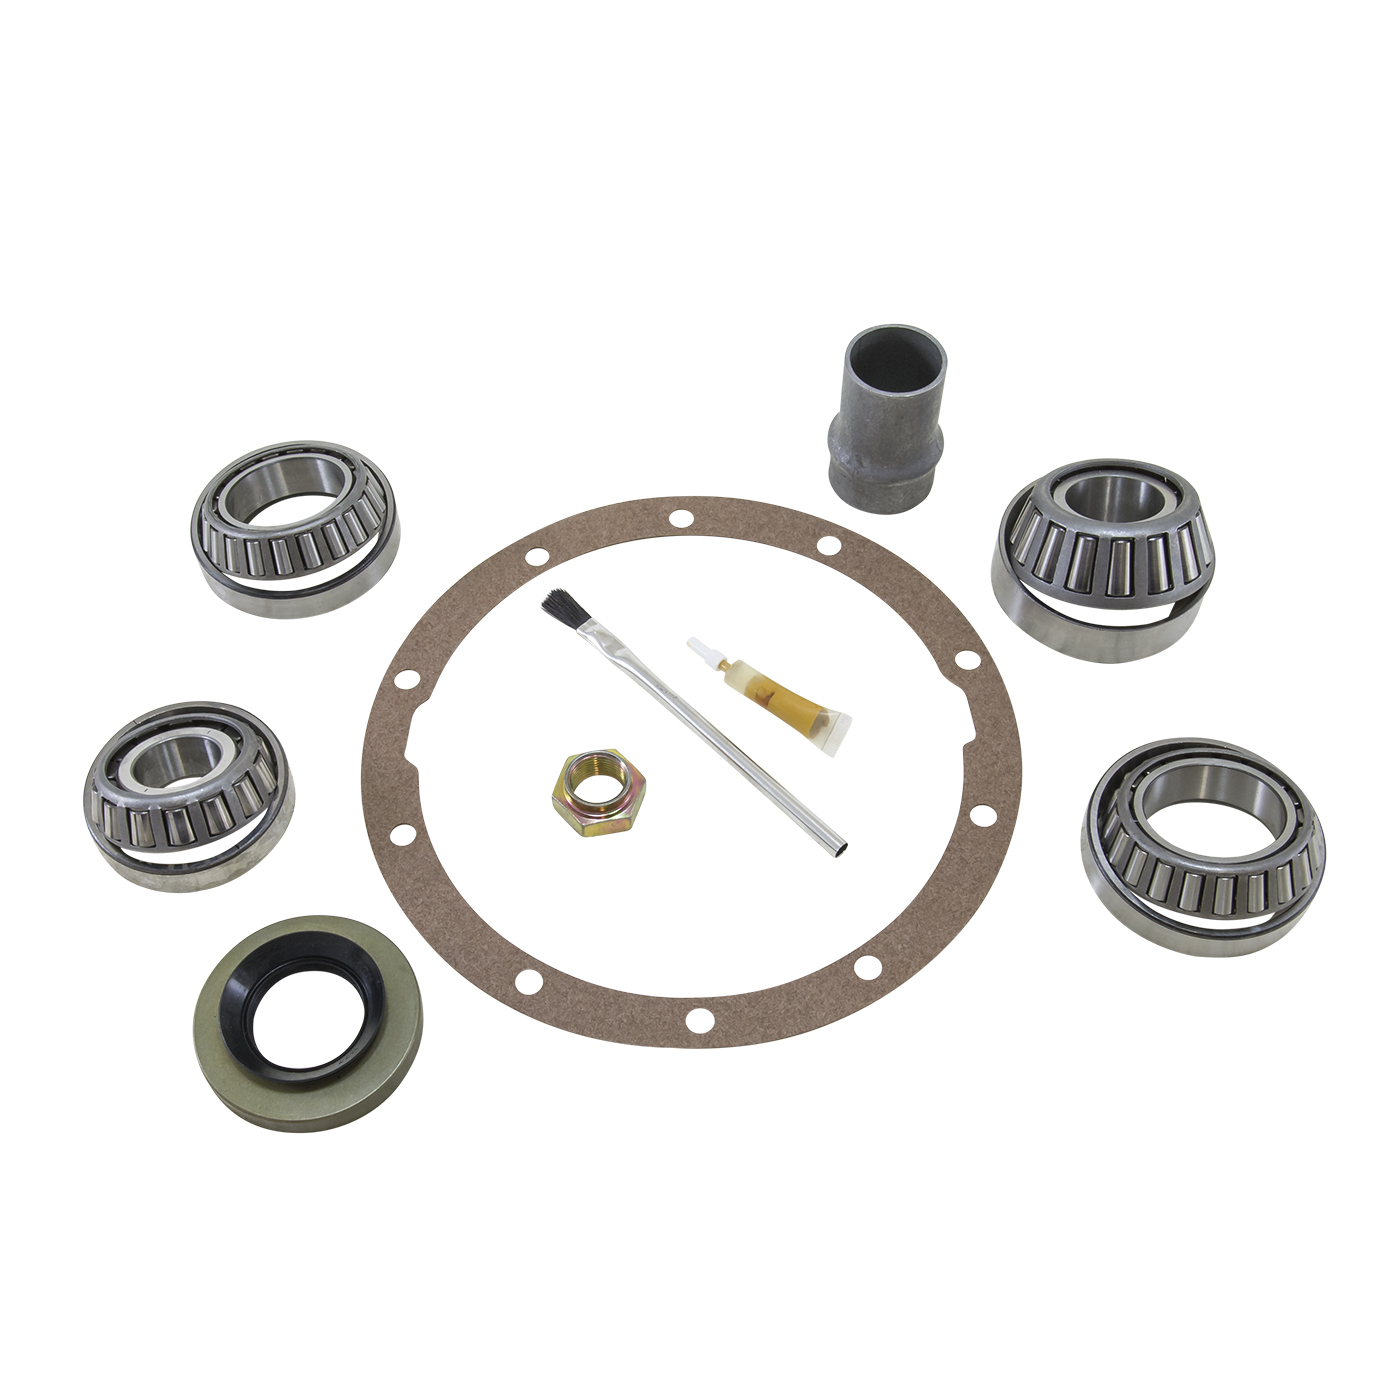 BK T8-D - Yukon bearing kit for '86 and newer Toyota 8